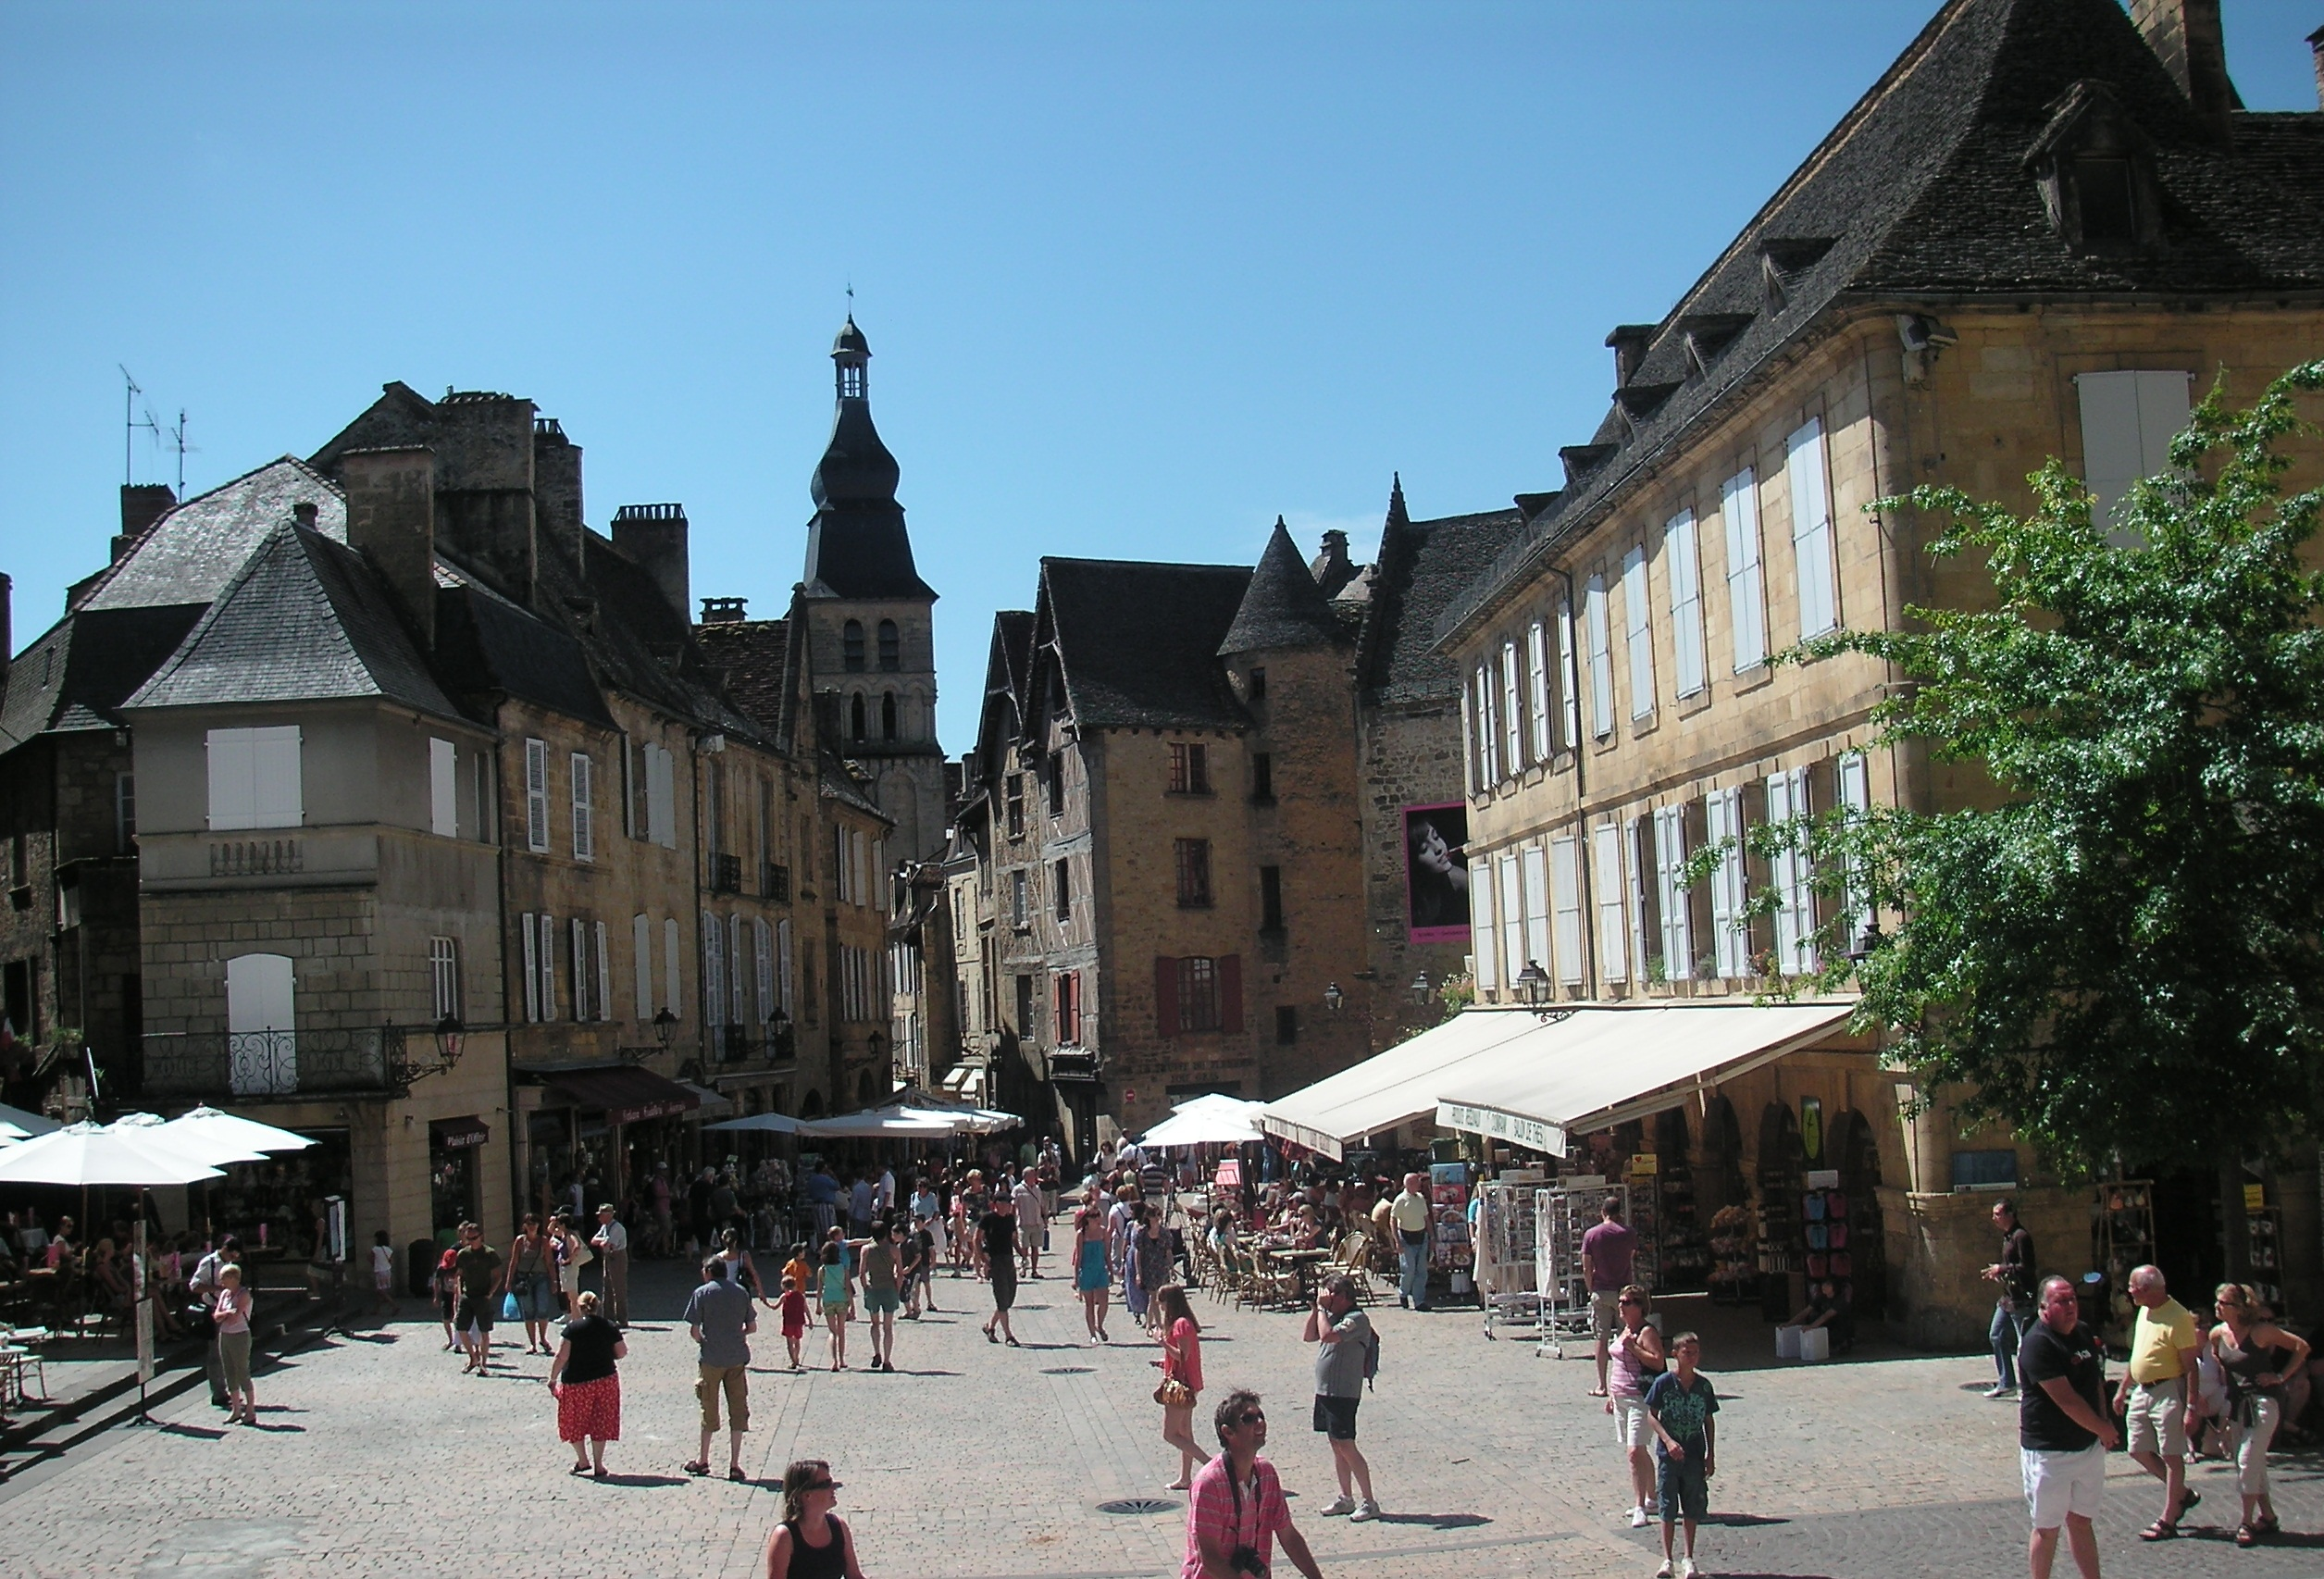 The Dordogne town of Sarlat